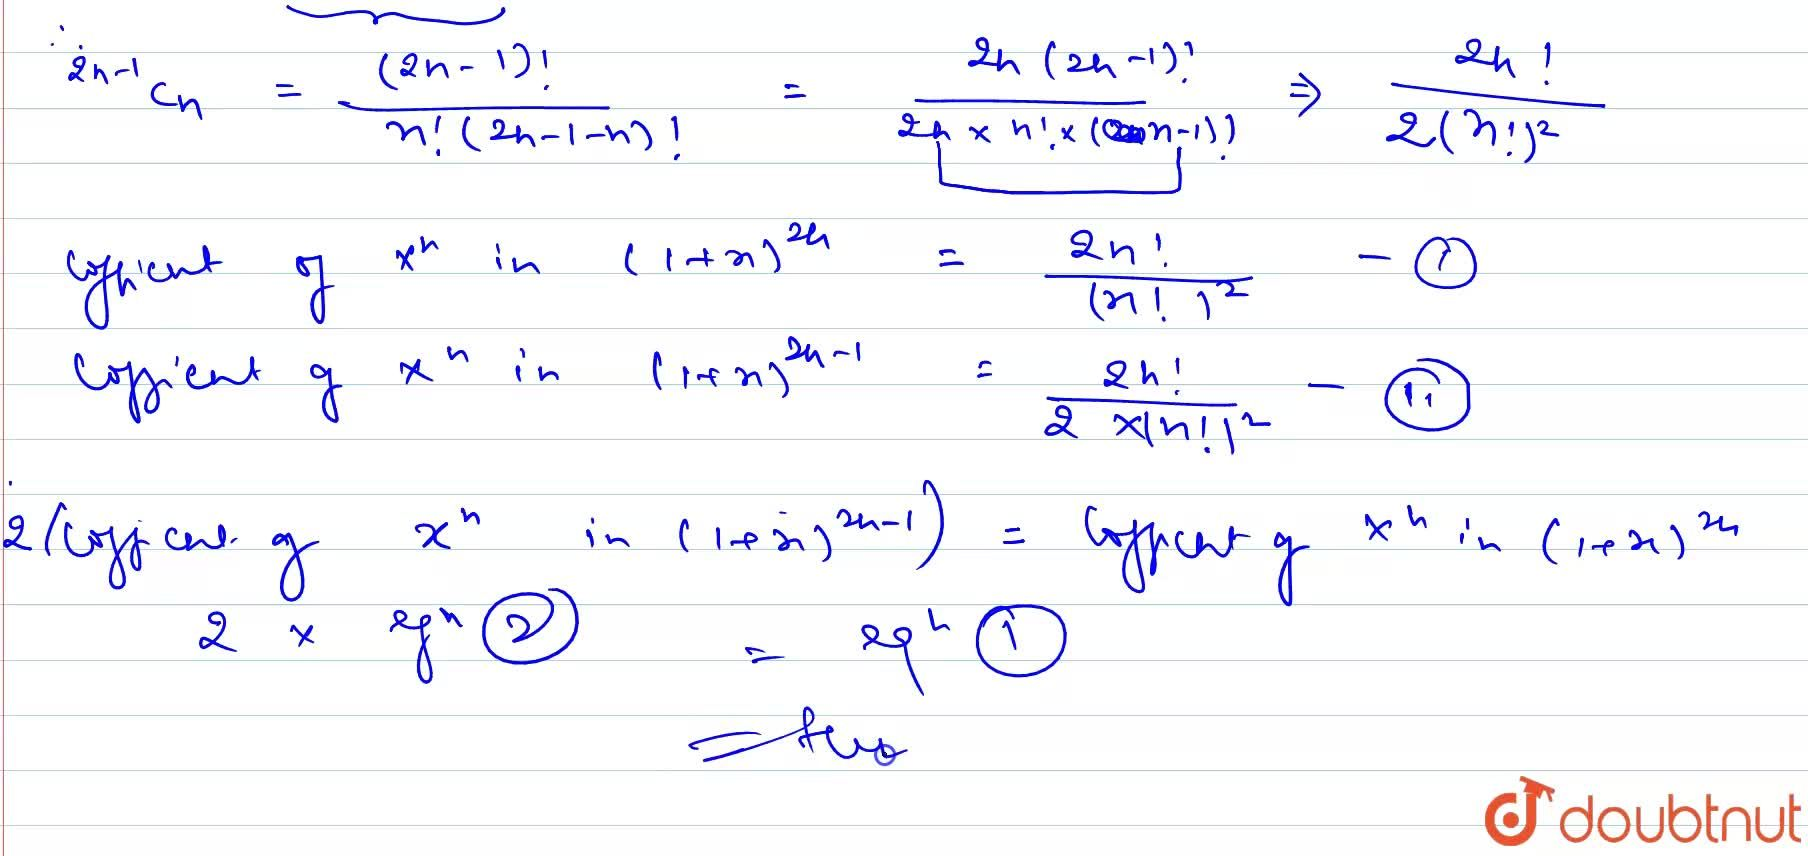 Prove that the  coefficient of x^(n) in the binomial expansion of (1+x)^(2n)  is twice the coefficient of x^(n) in the binomial expansion of (1+x)^(2n-1).